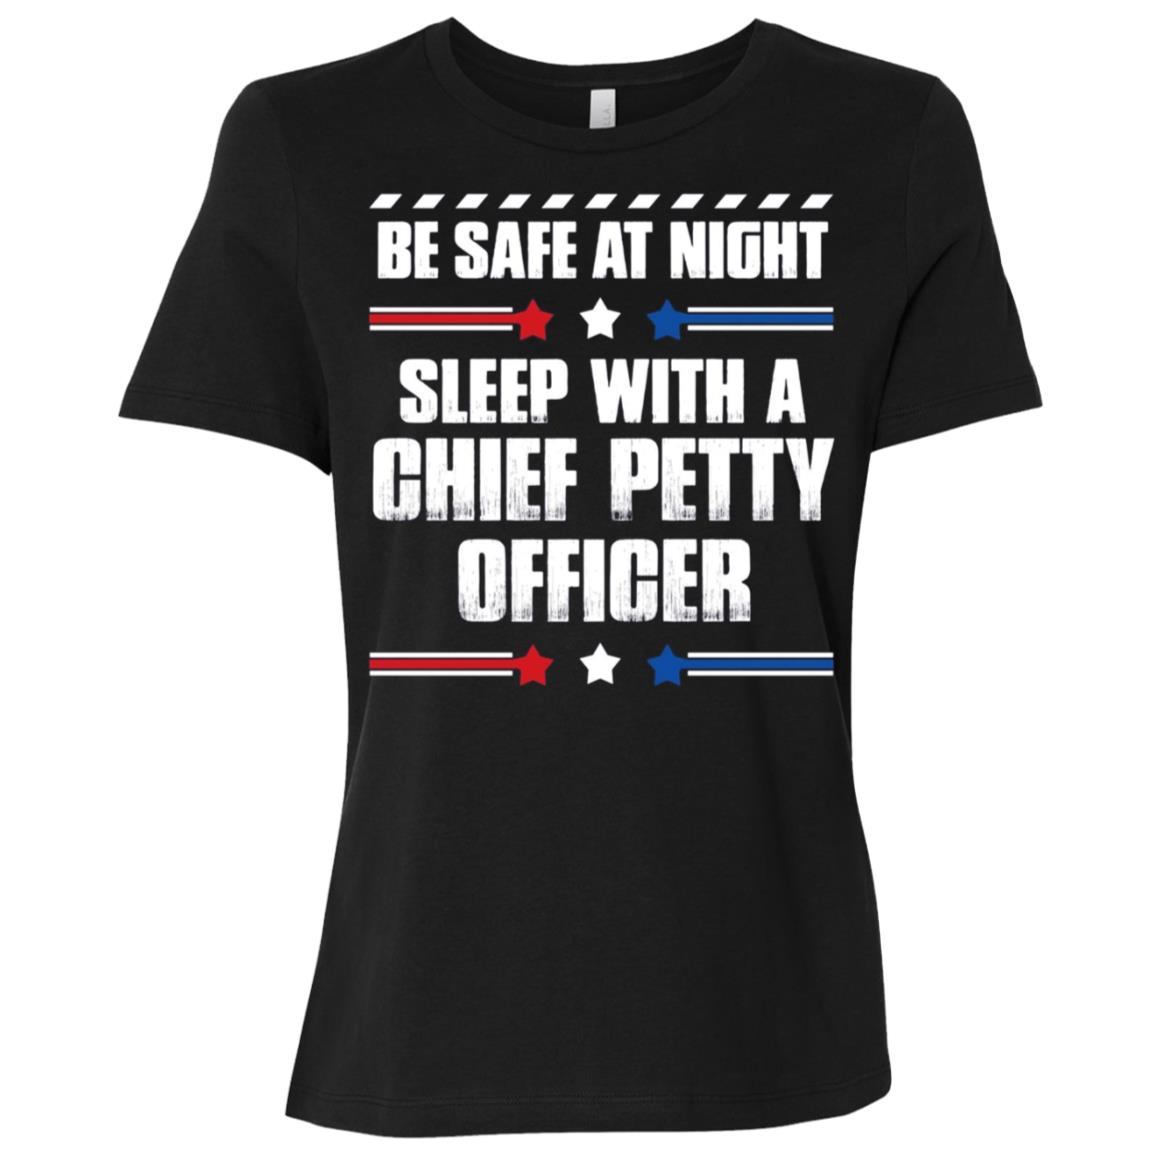 Chief Petty Officer – Be Safe at Night! Women Short Sleeve T-Shirt